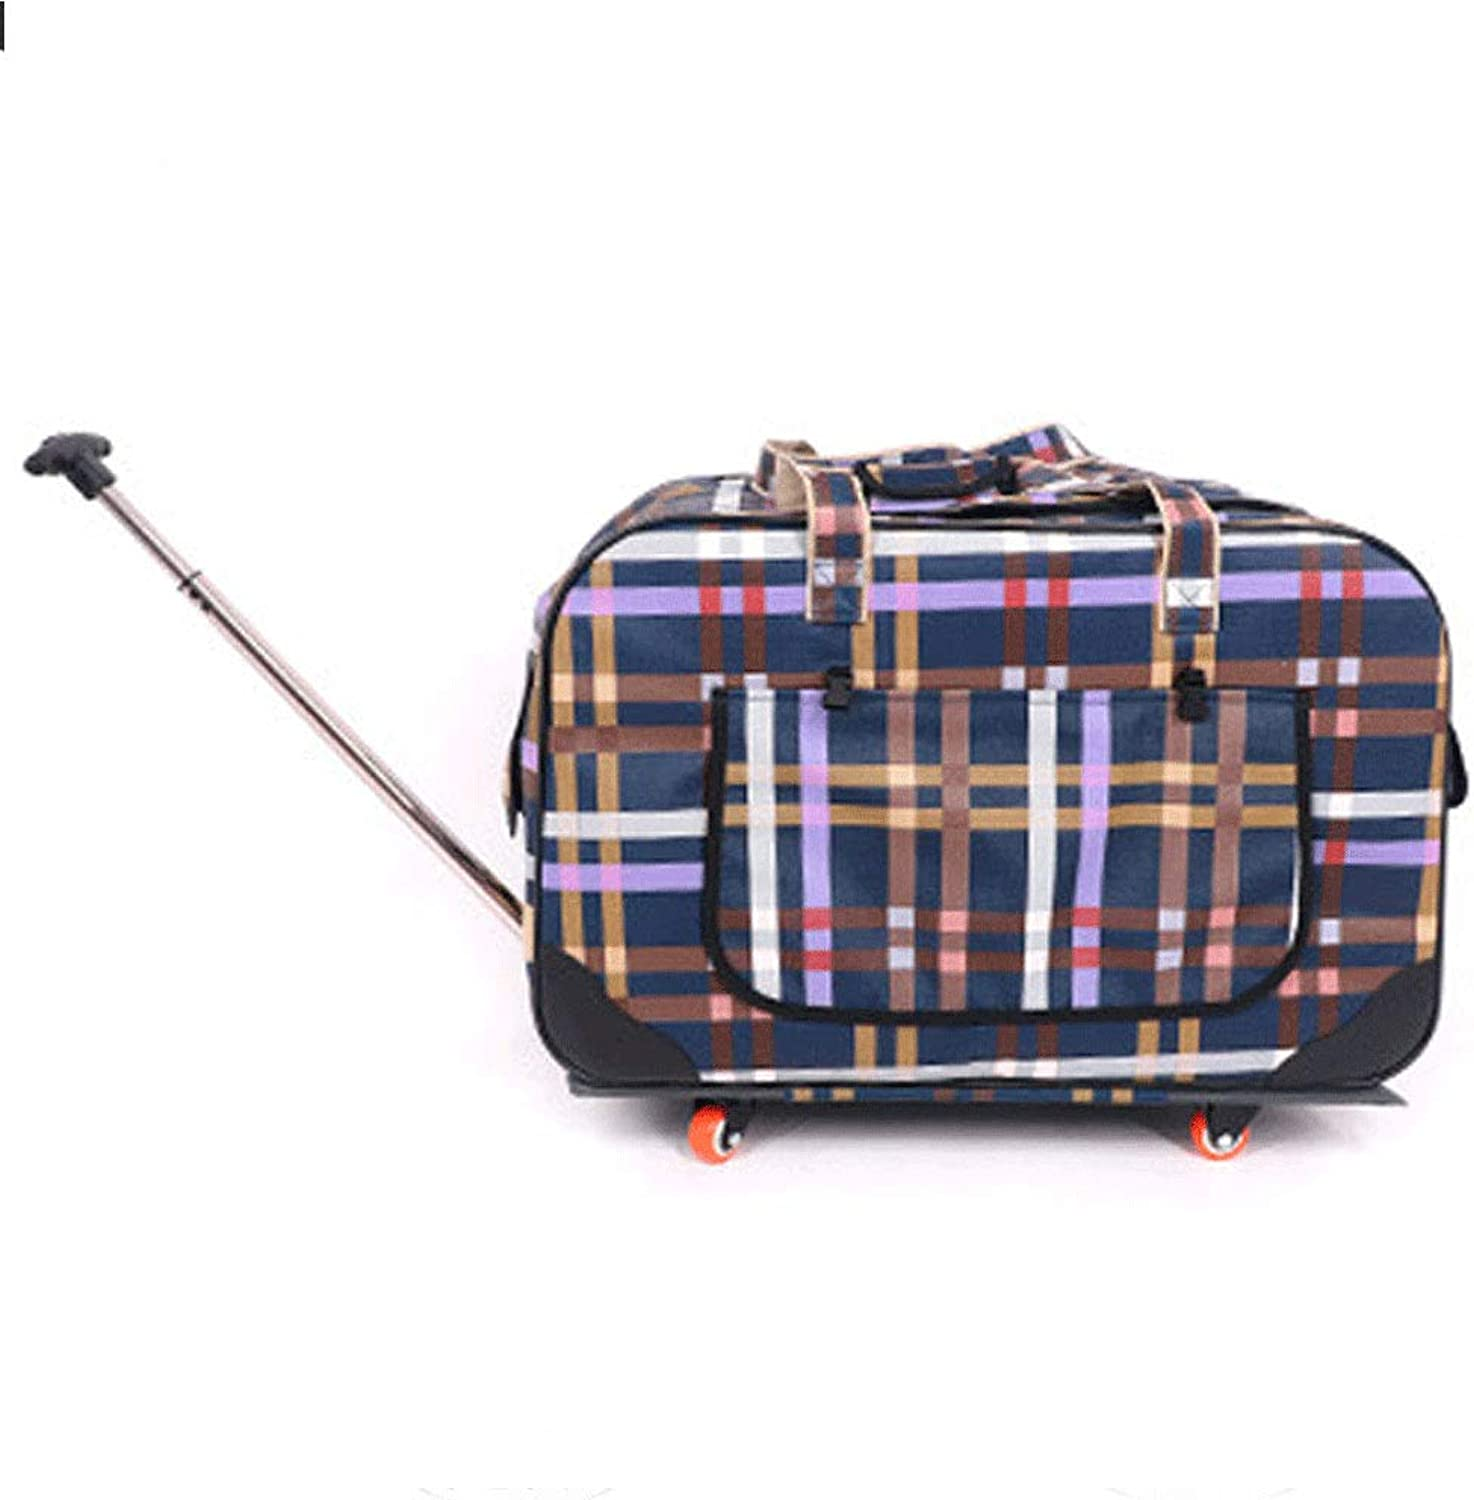 HN Dog Out Bag FourWheel Folding Trolley Case Cat Pet Stroller Breathable Cat Dog Suitcase,Check